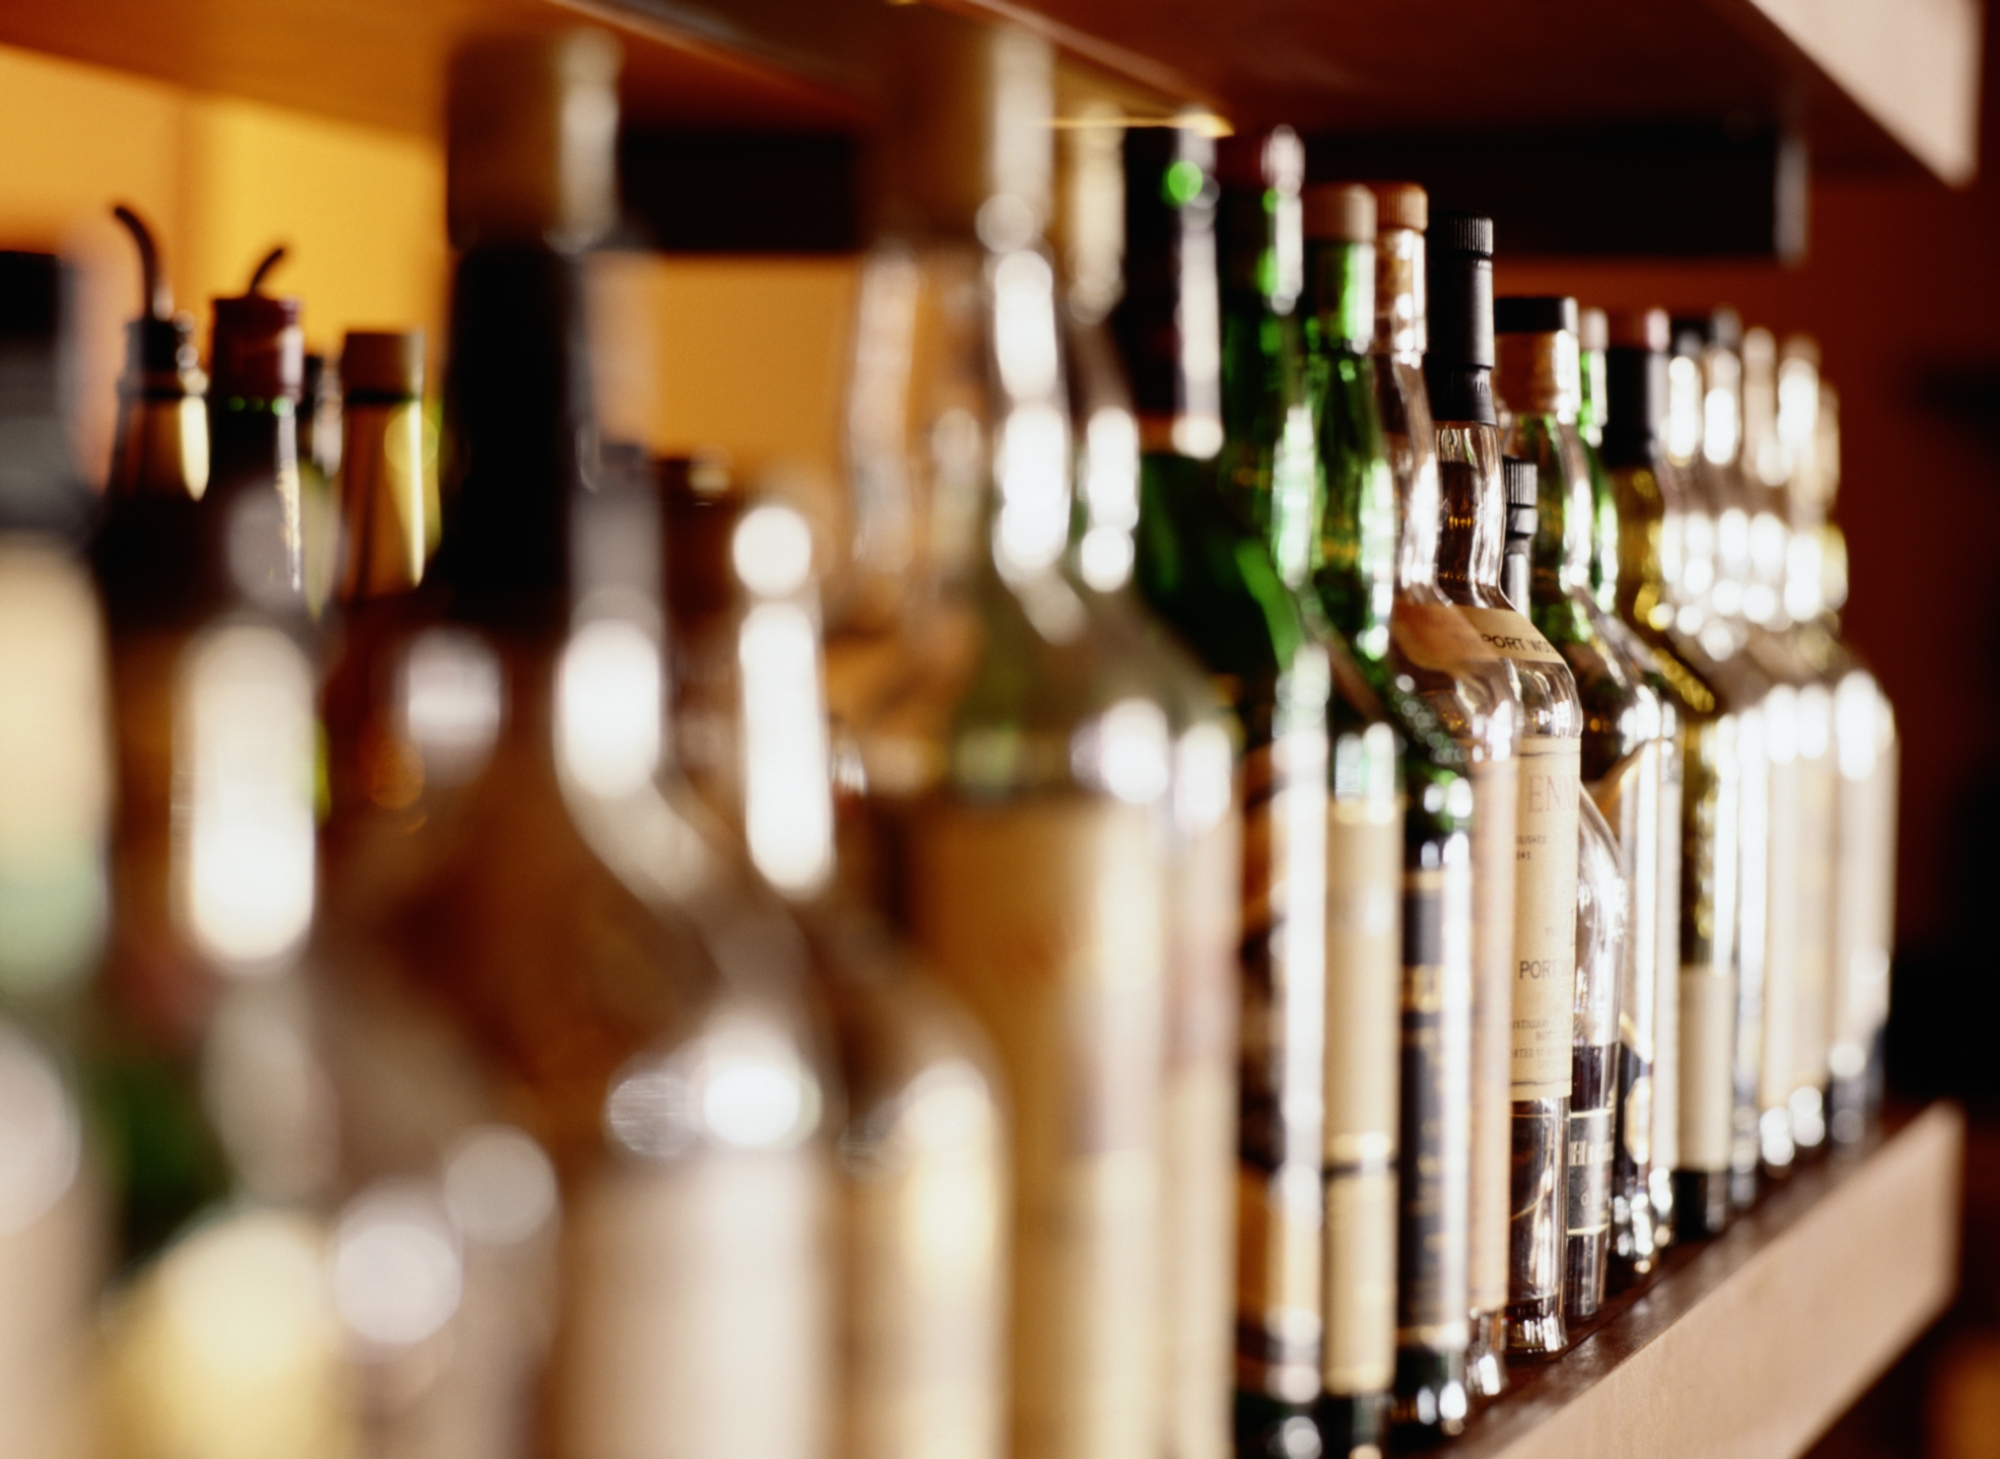 Police are frustrated at consistent liquor thefts.